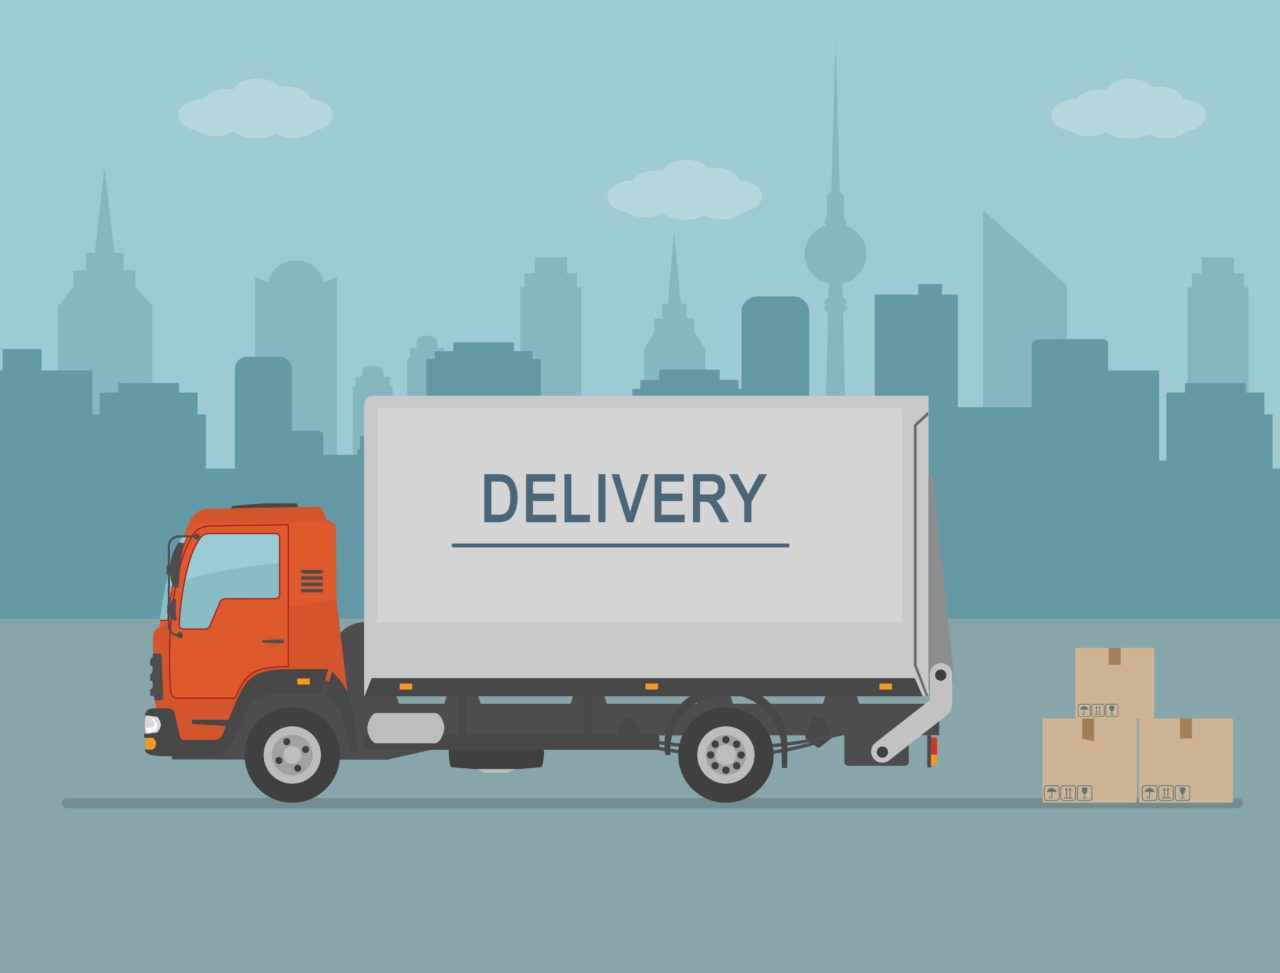 Know About Indah Cargo Tariff Before Availing Of Their Services